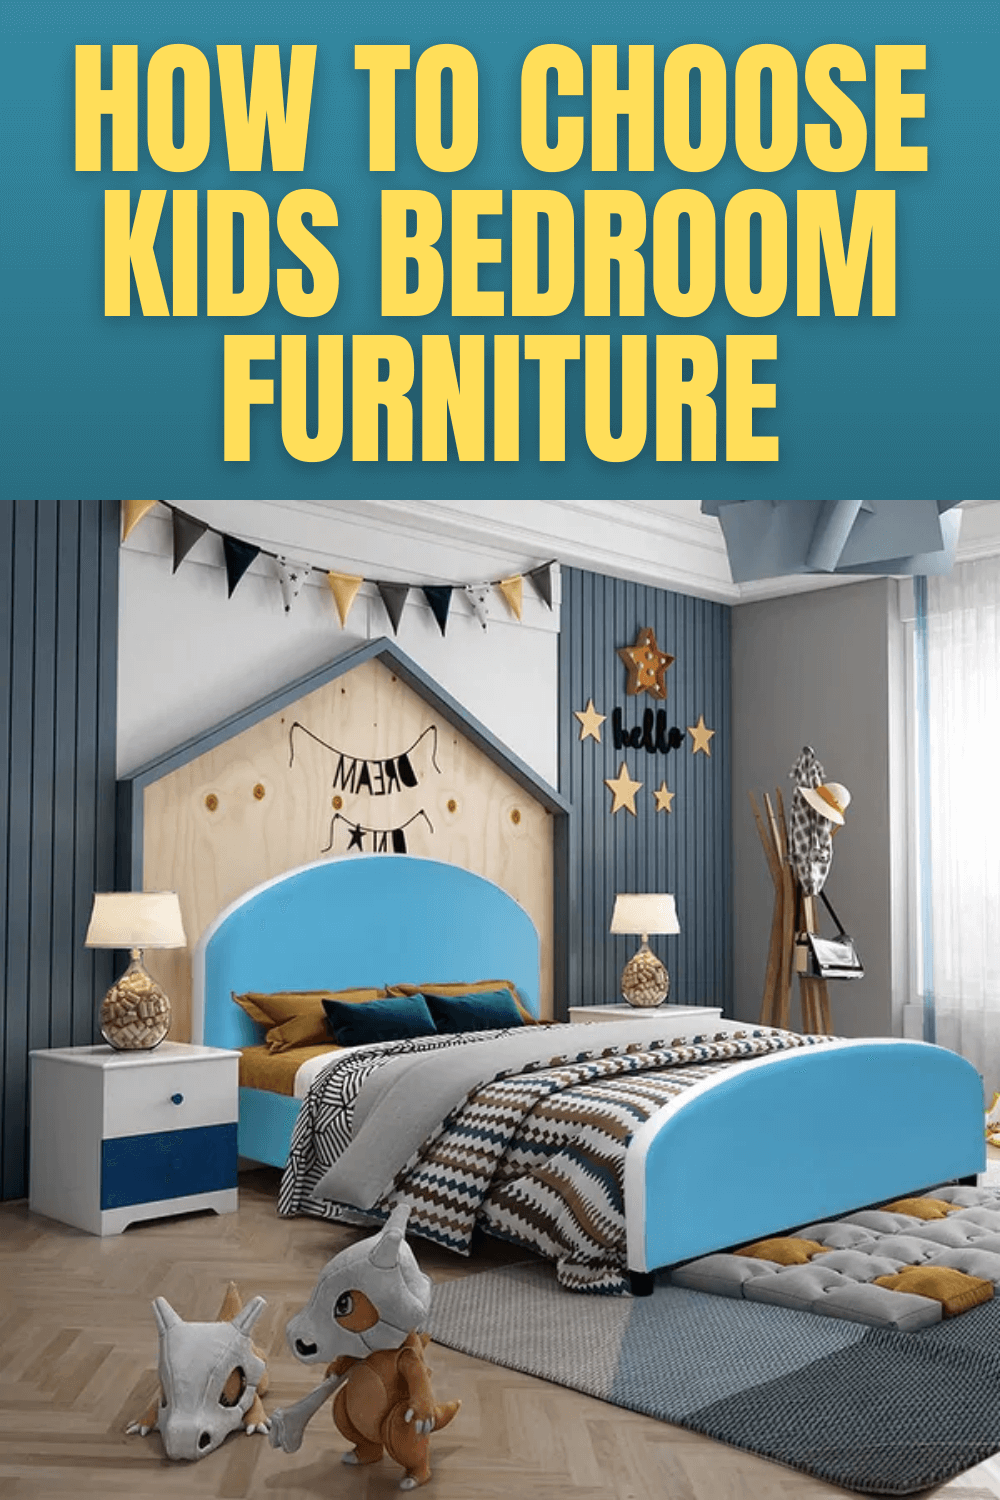 HOW TO CHOOSE KIDS BEDROOM FURNITURE